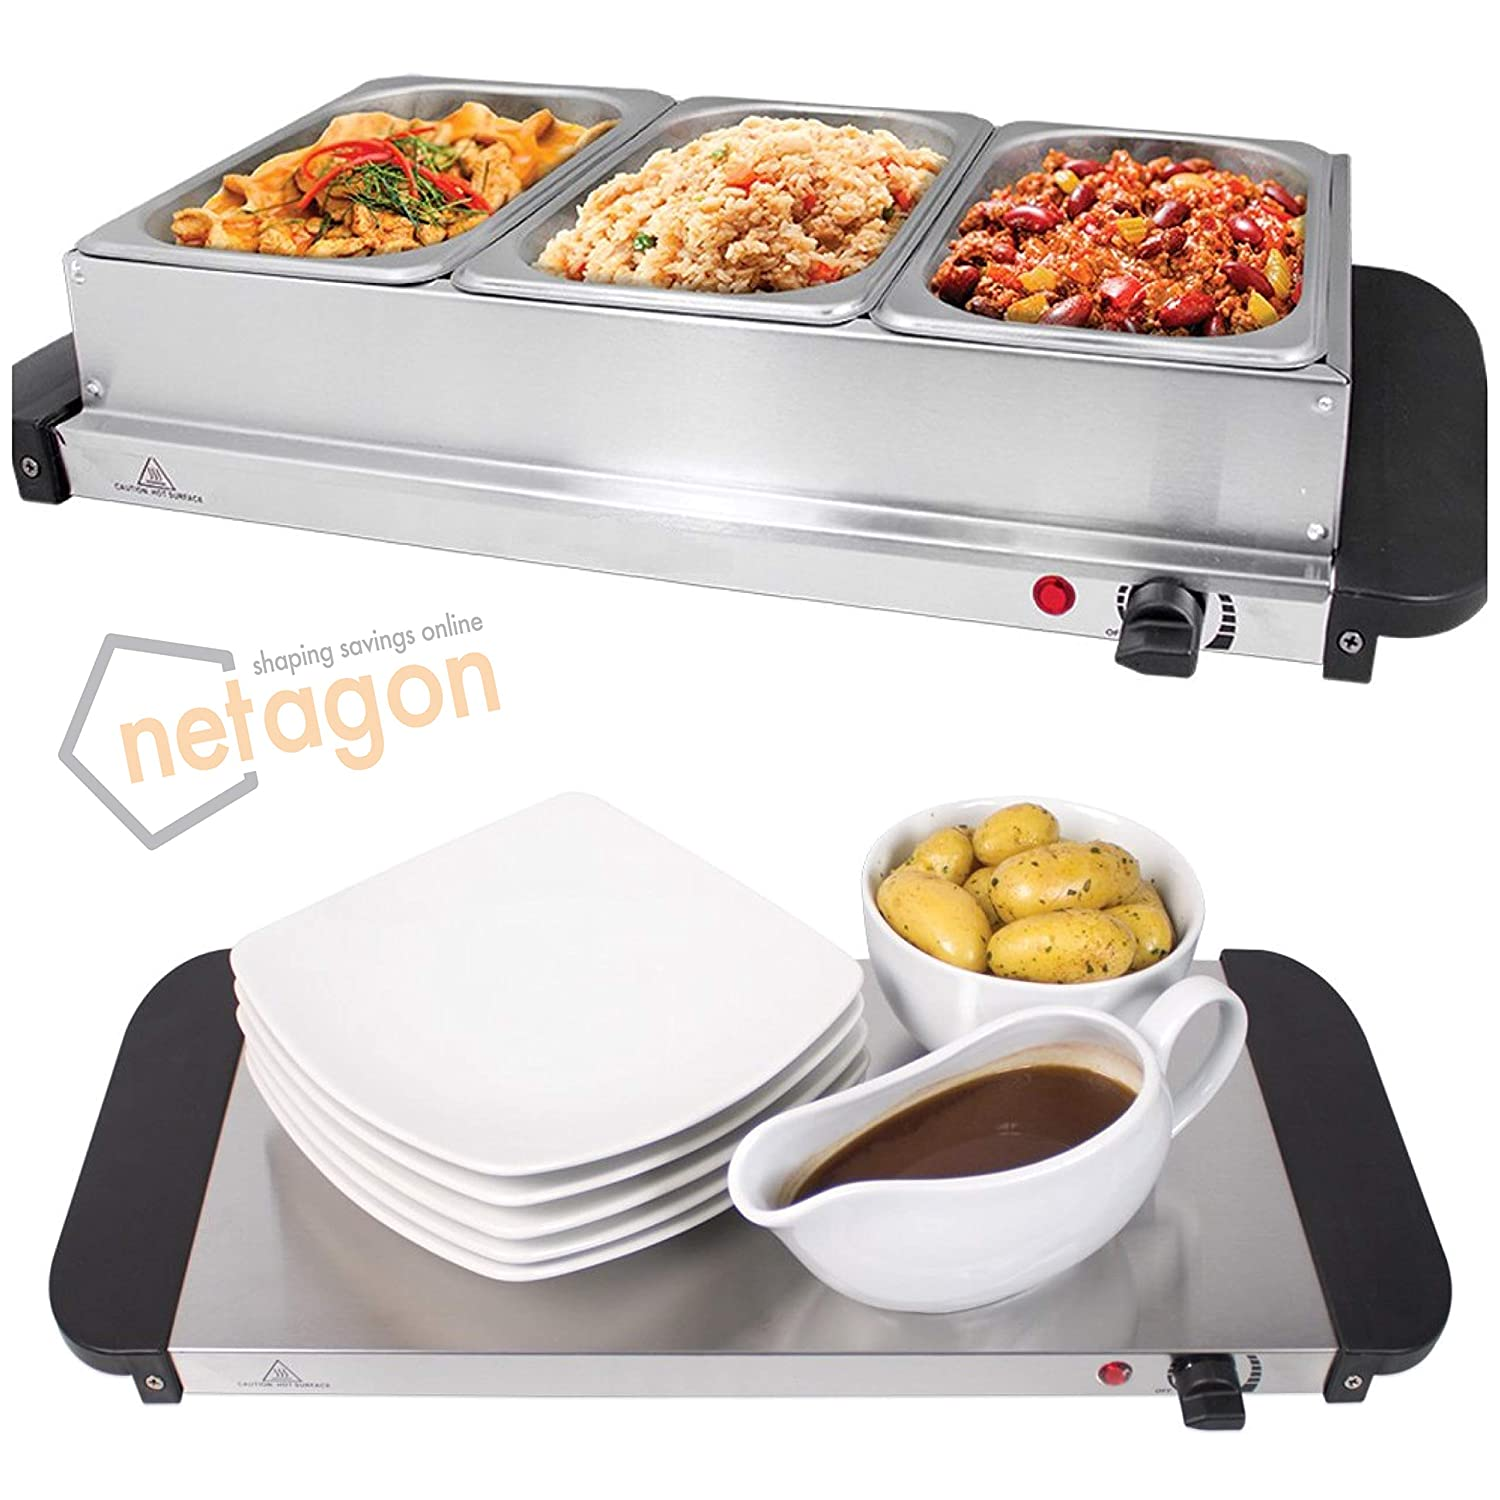 Swell Netagon 200W Large Electric Buffet Server 3 Warming Trays Hot Plate Food Warmer Interior Design Ideas Apansoteloinfo